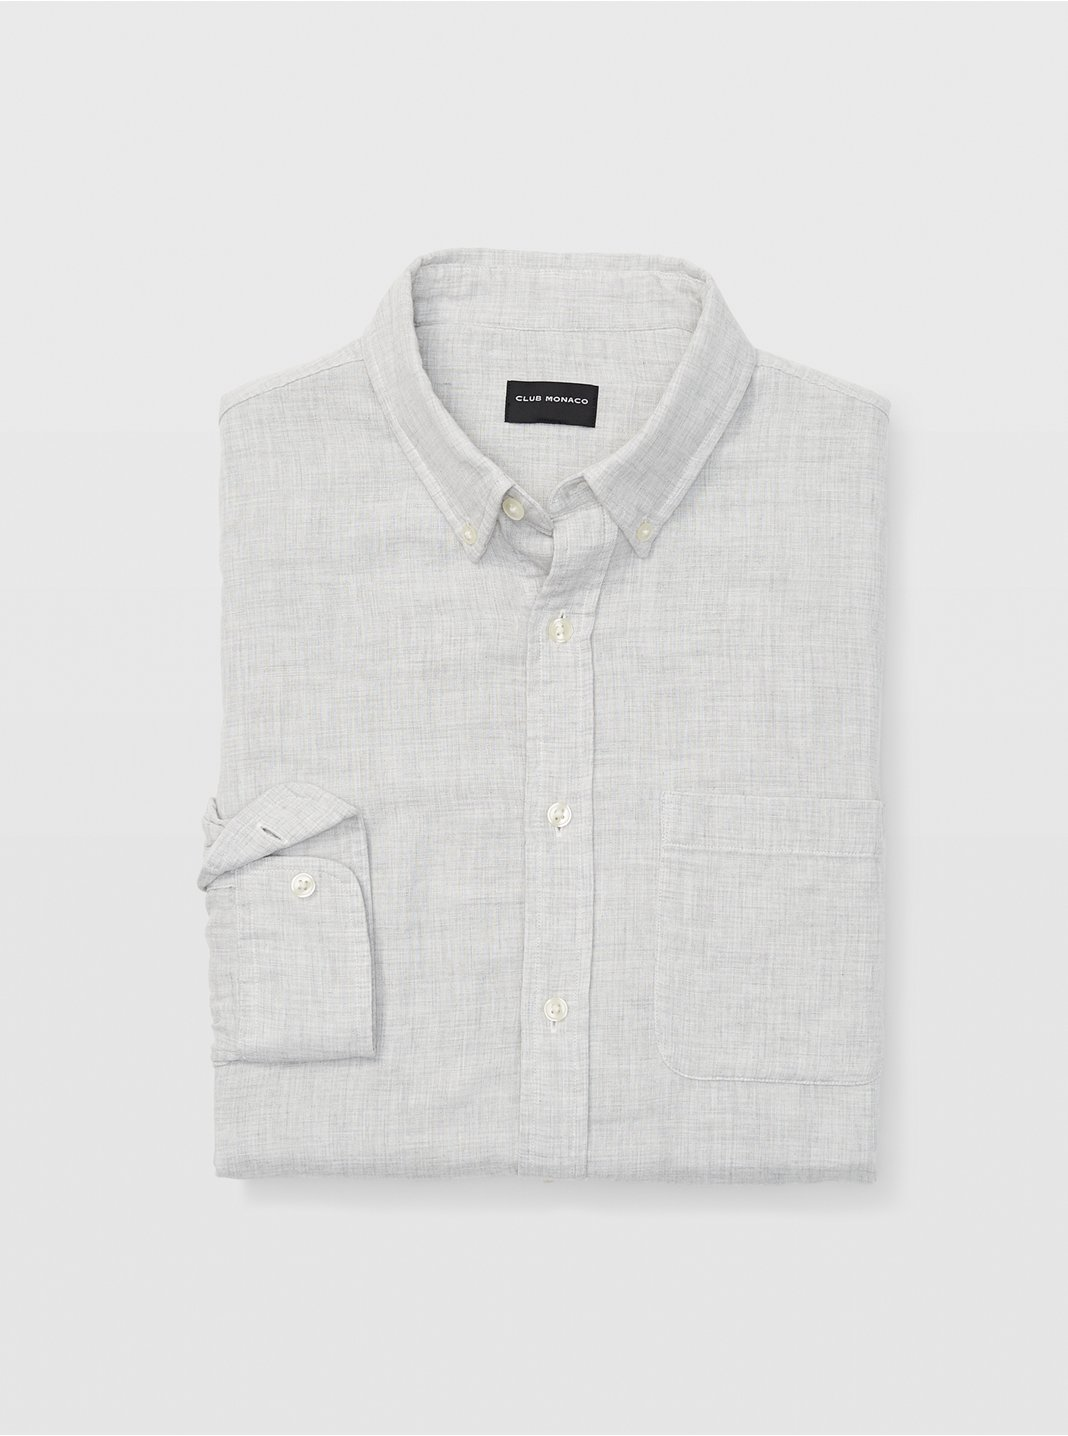 Slim Solid Double-Faced Shirt